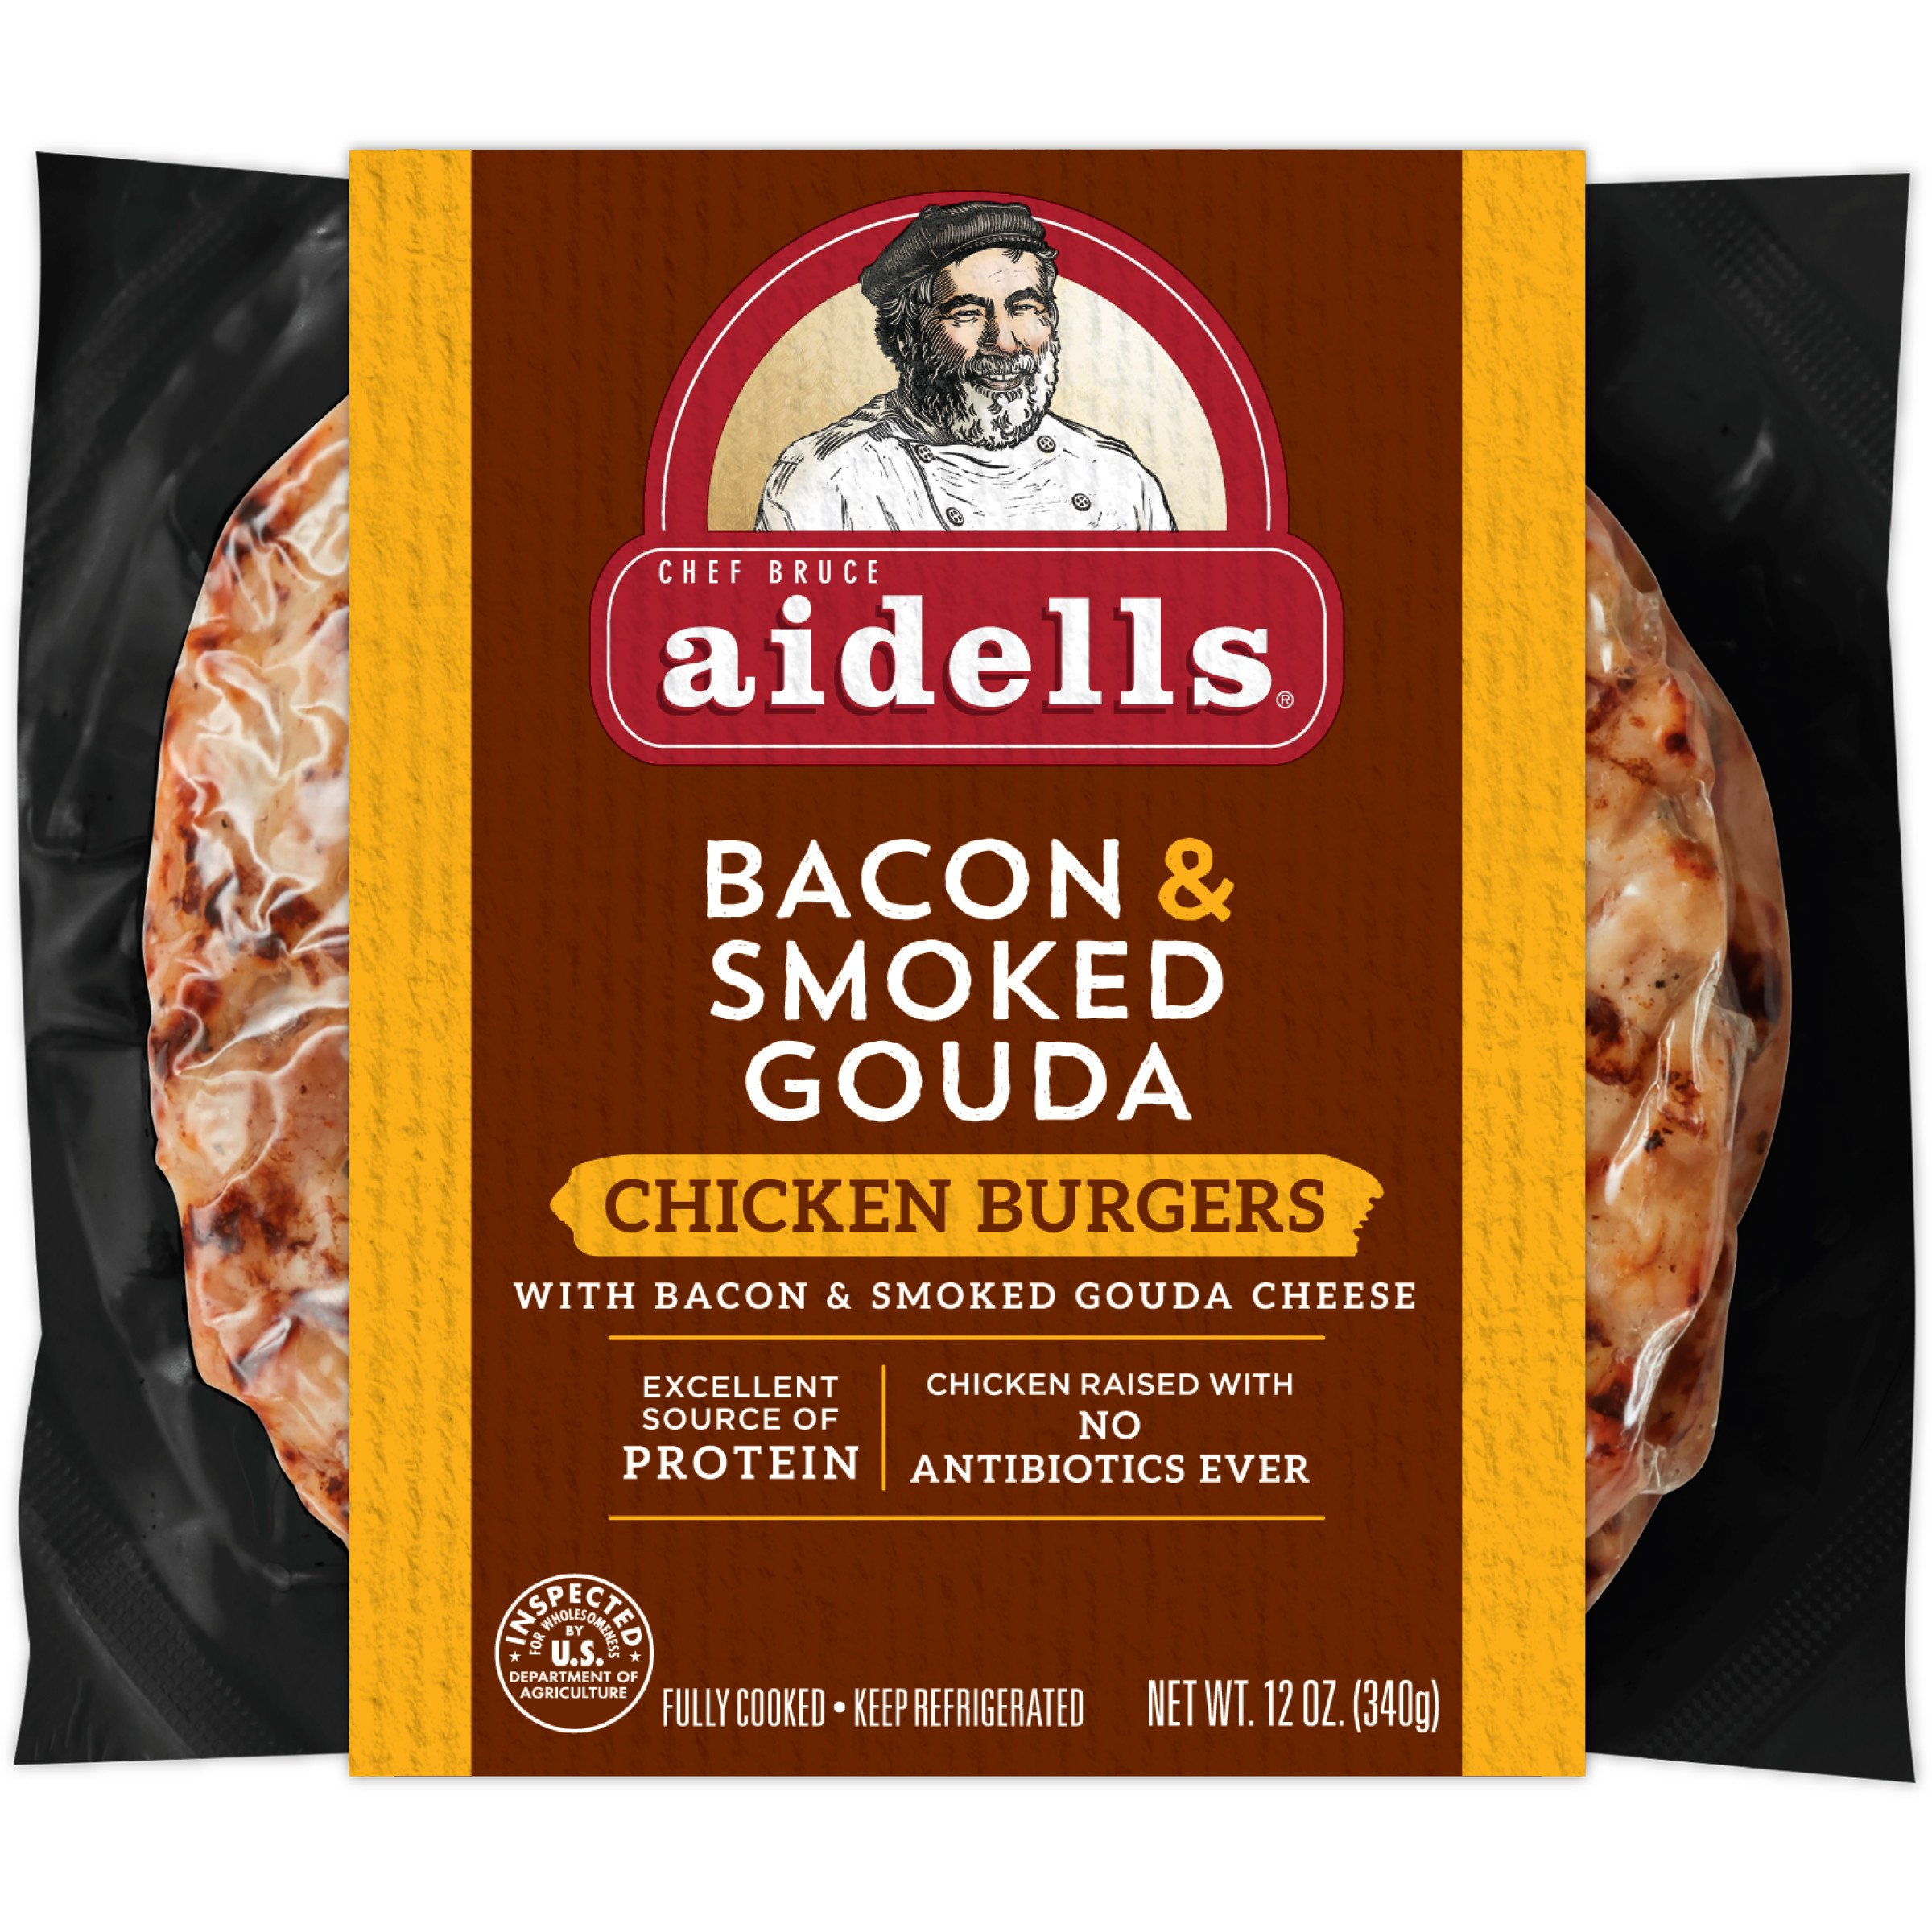 Aidells Bacon And Gouda Chicken Burgers Shop Chicken At H E B